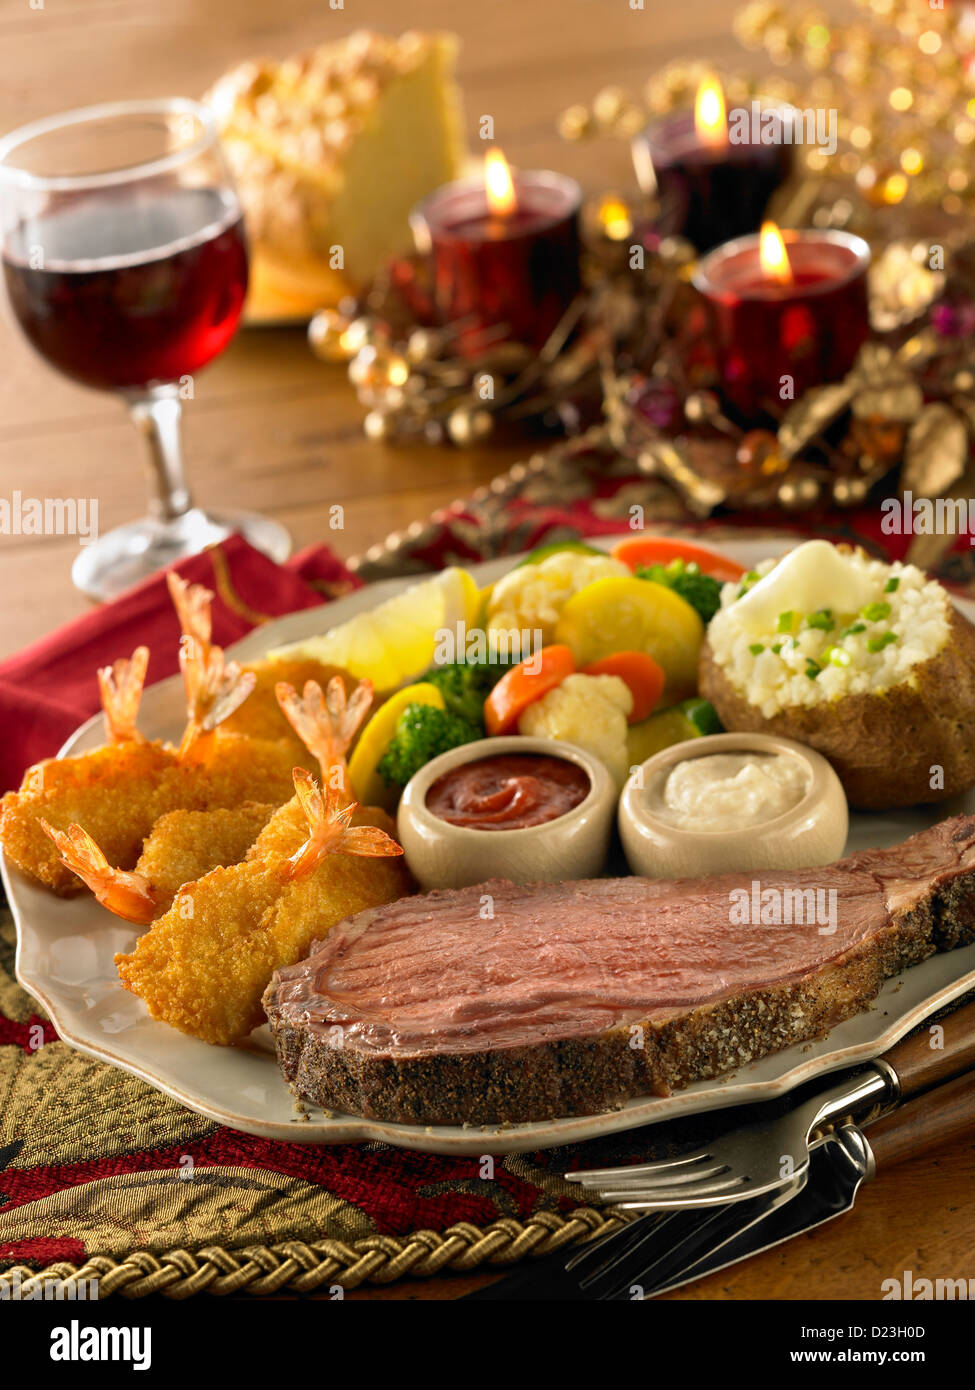 Prime Rib And Fried Shrimp Dinner With Baked Potato Vegetables And Red Wine In A Holiday Setting